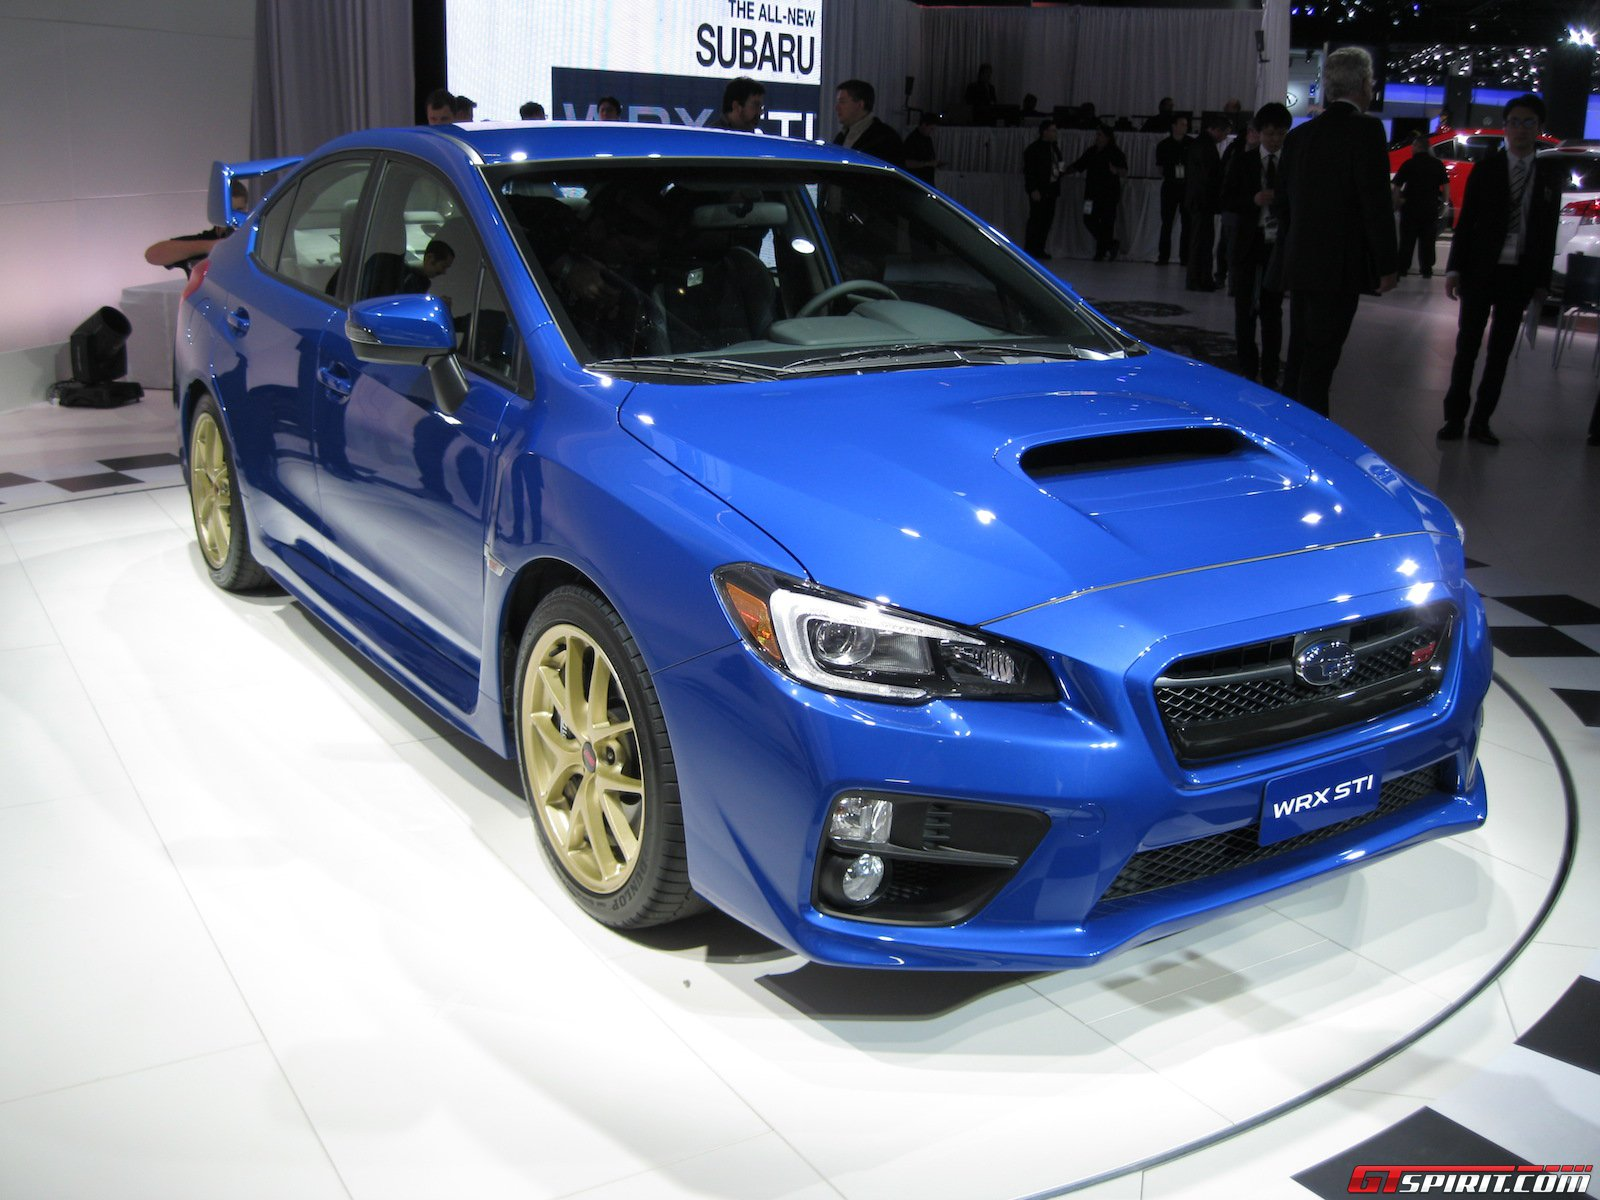 detroit 2014 subaru wrx sti gtspirit. Black Bedroom Furniture Sets. Home Design Ideas